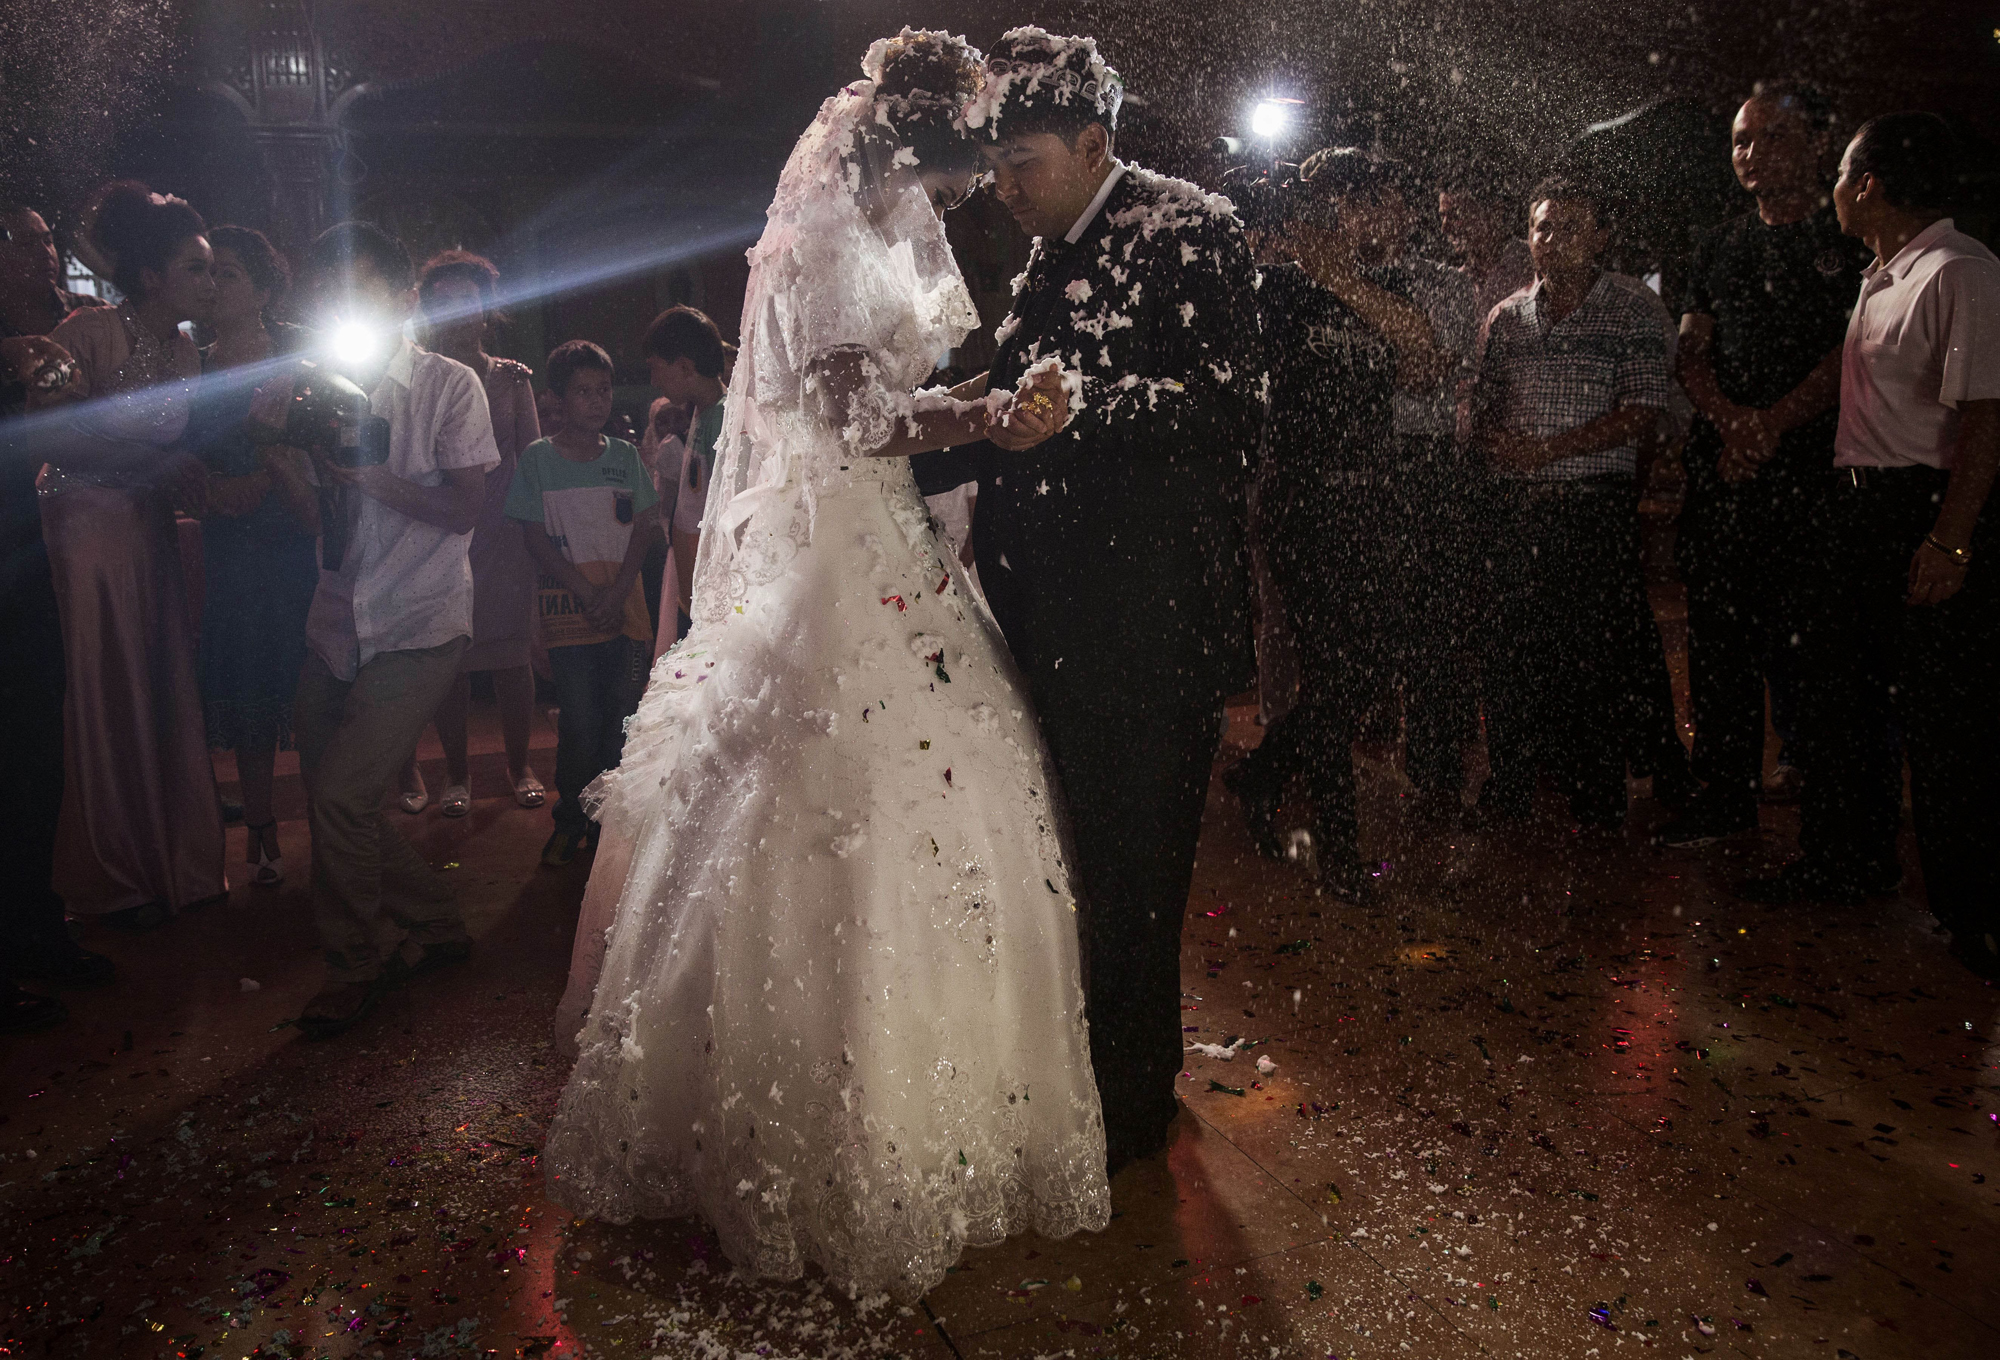 A Uighur couple have their first dance at their wedding celebration after being married on August 2, 2014 in Kashgar.